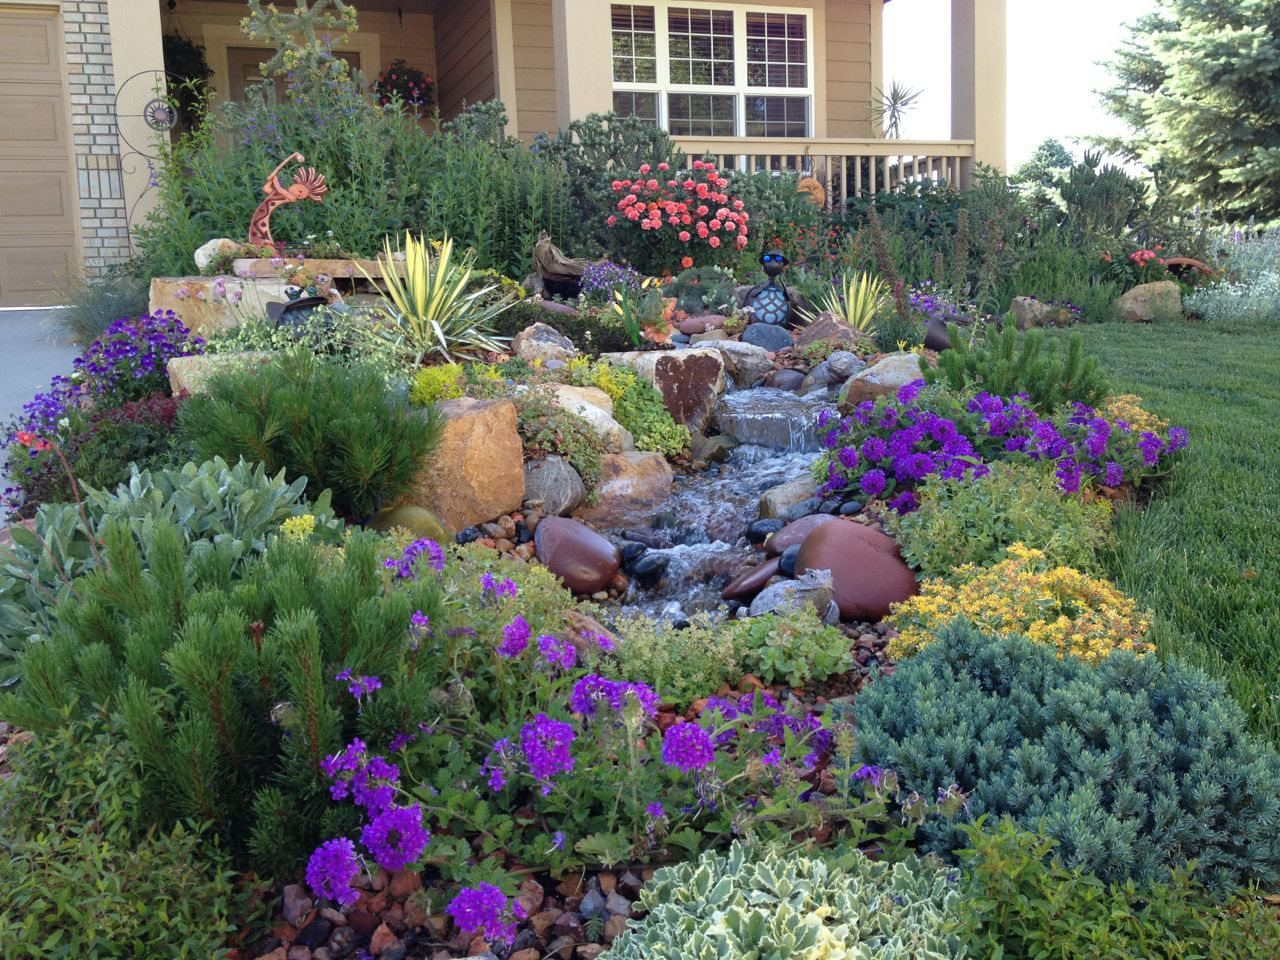 Landscaping Ideas for Backyard with Slope